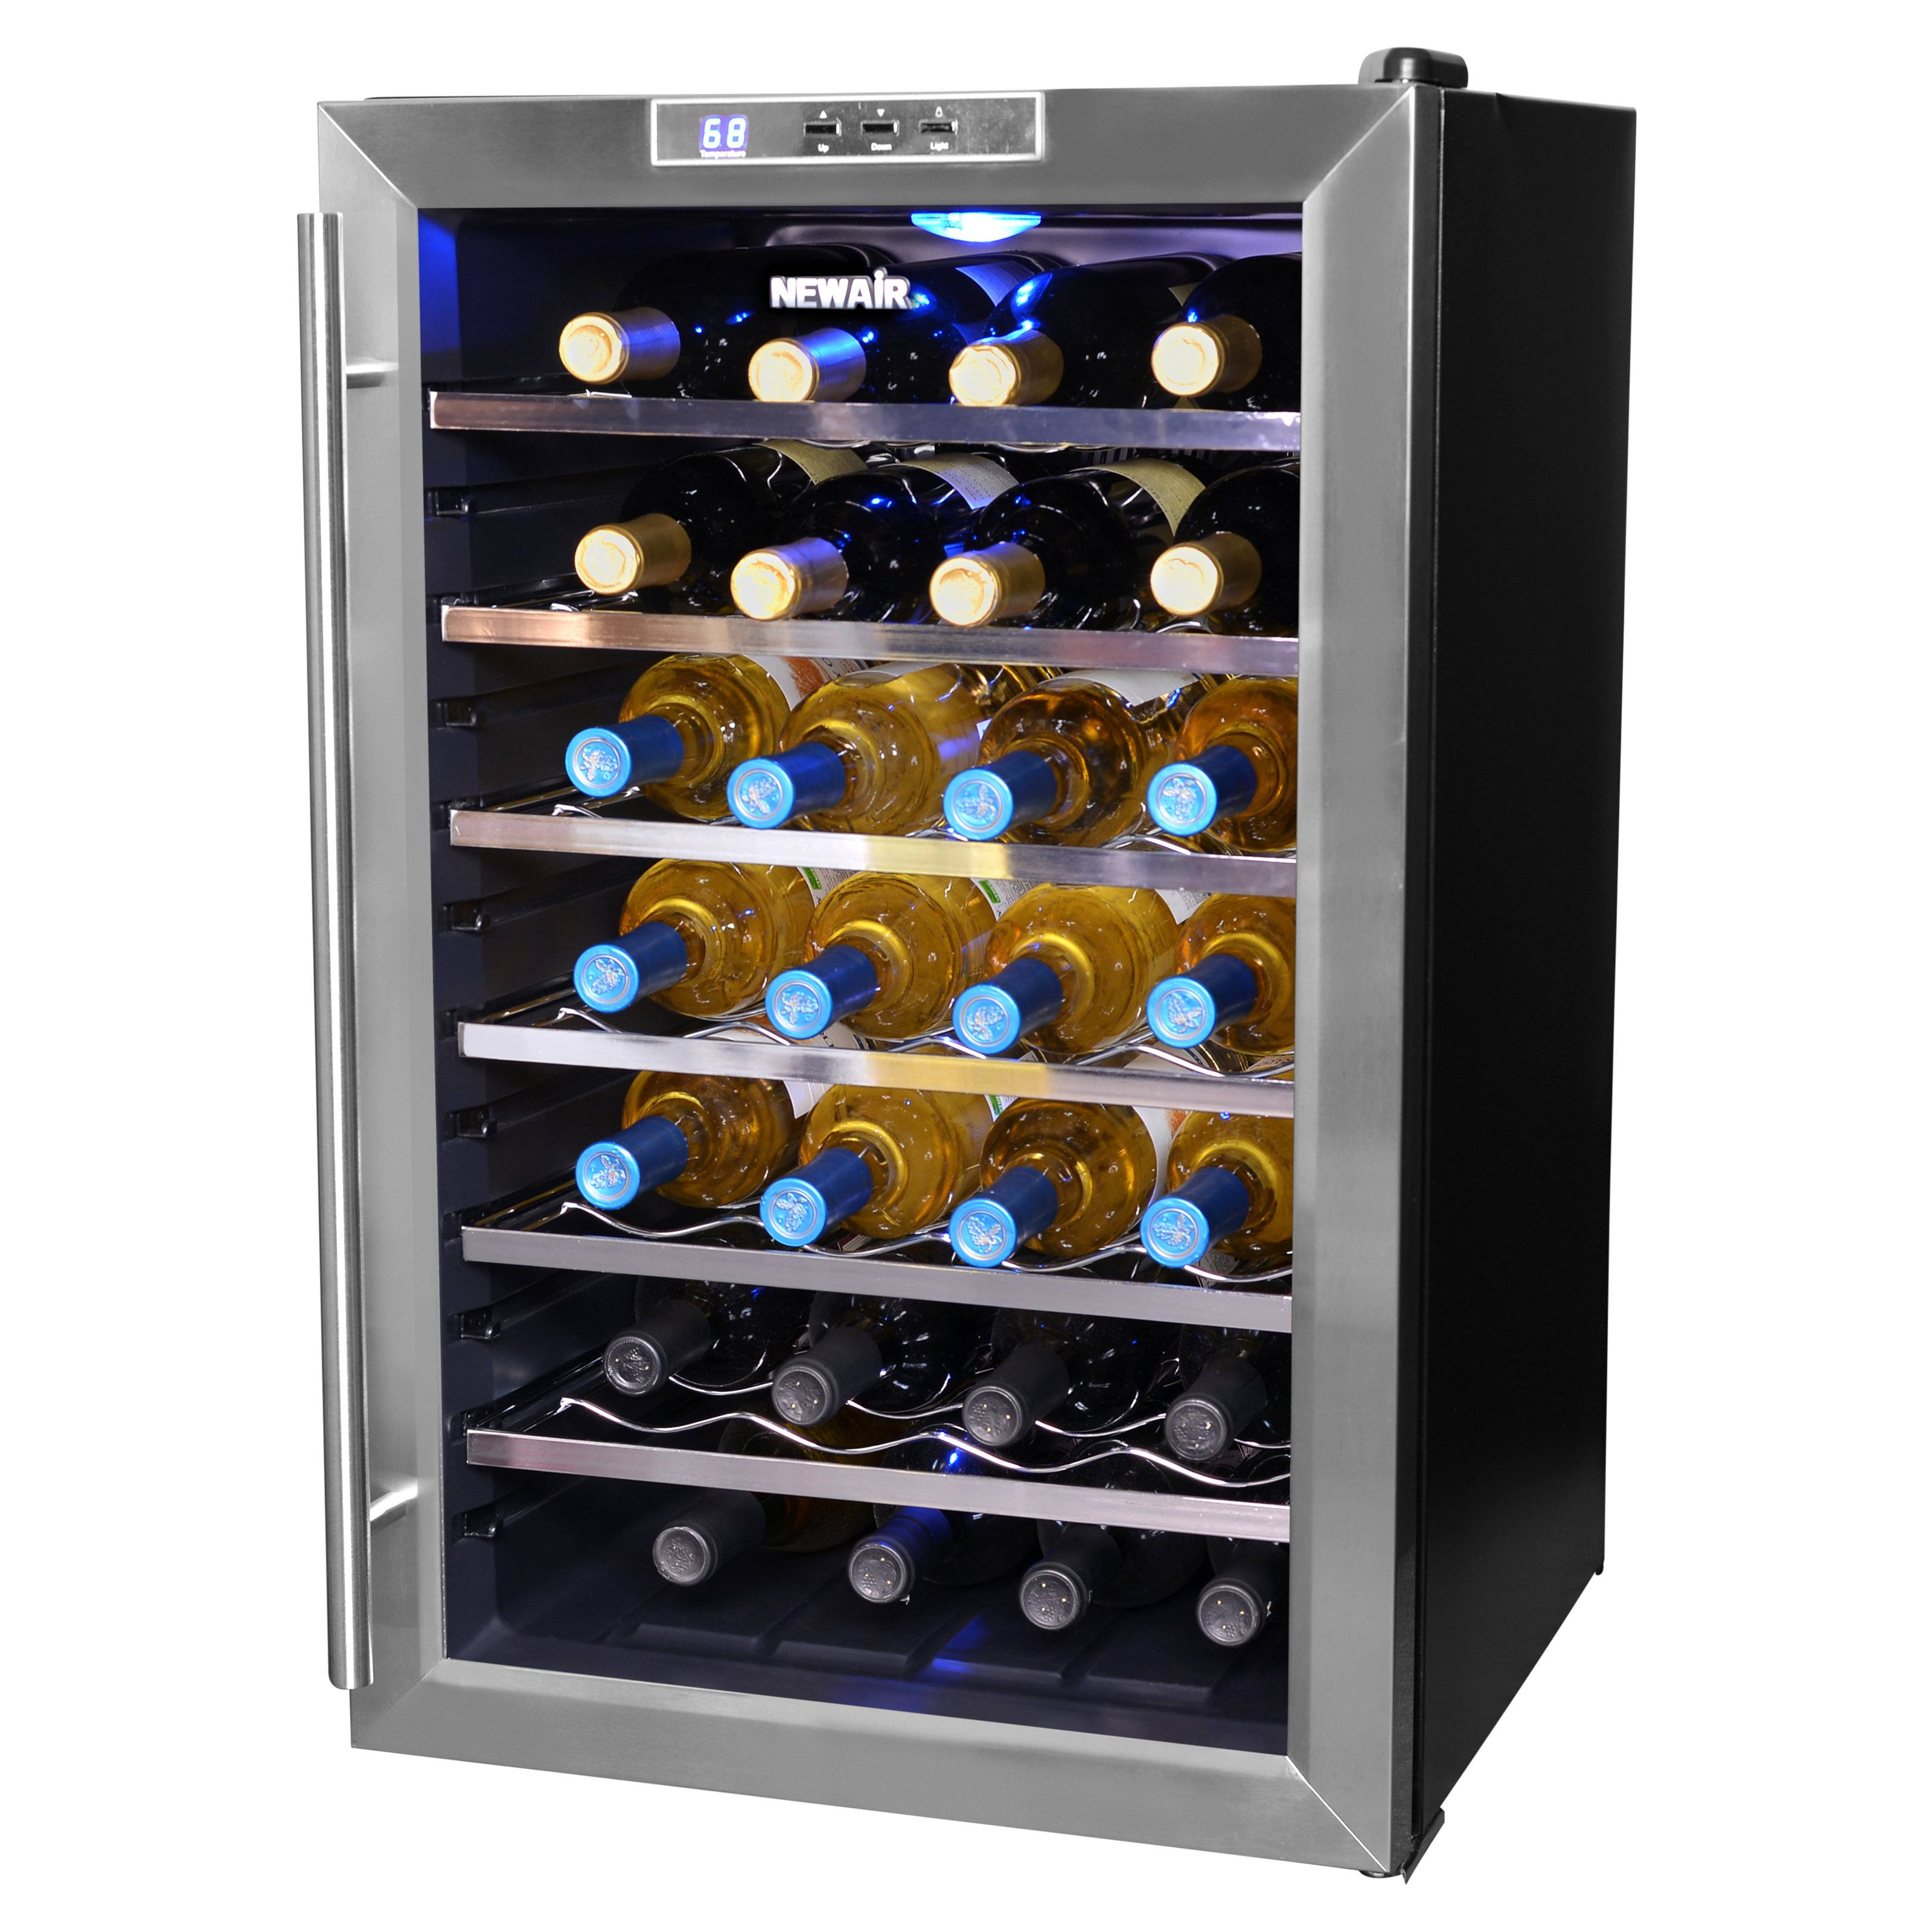 NewAir AW-281E 28-Bottle Thermoelectric Wine Refrigerator, Stainless Steel and Black